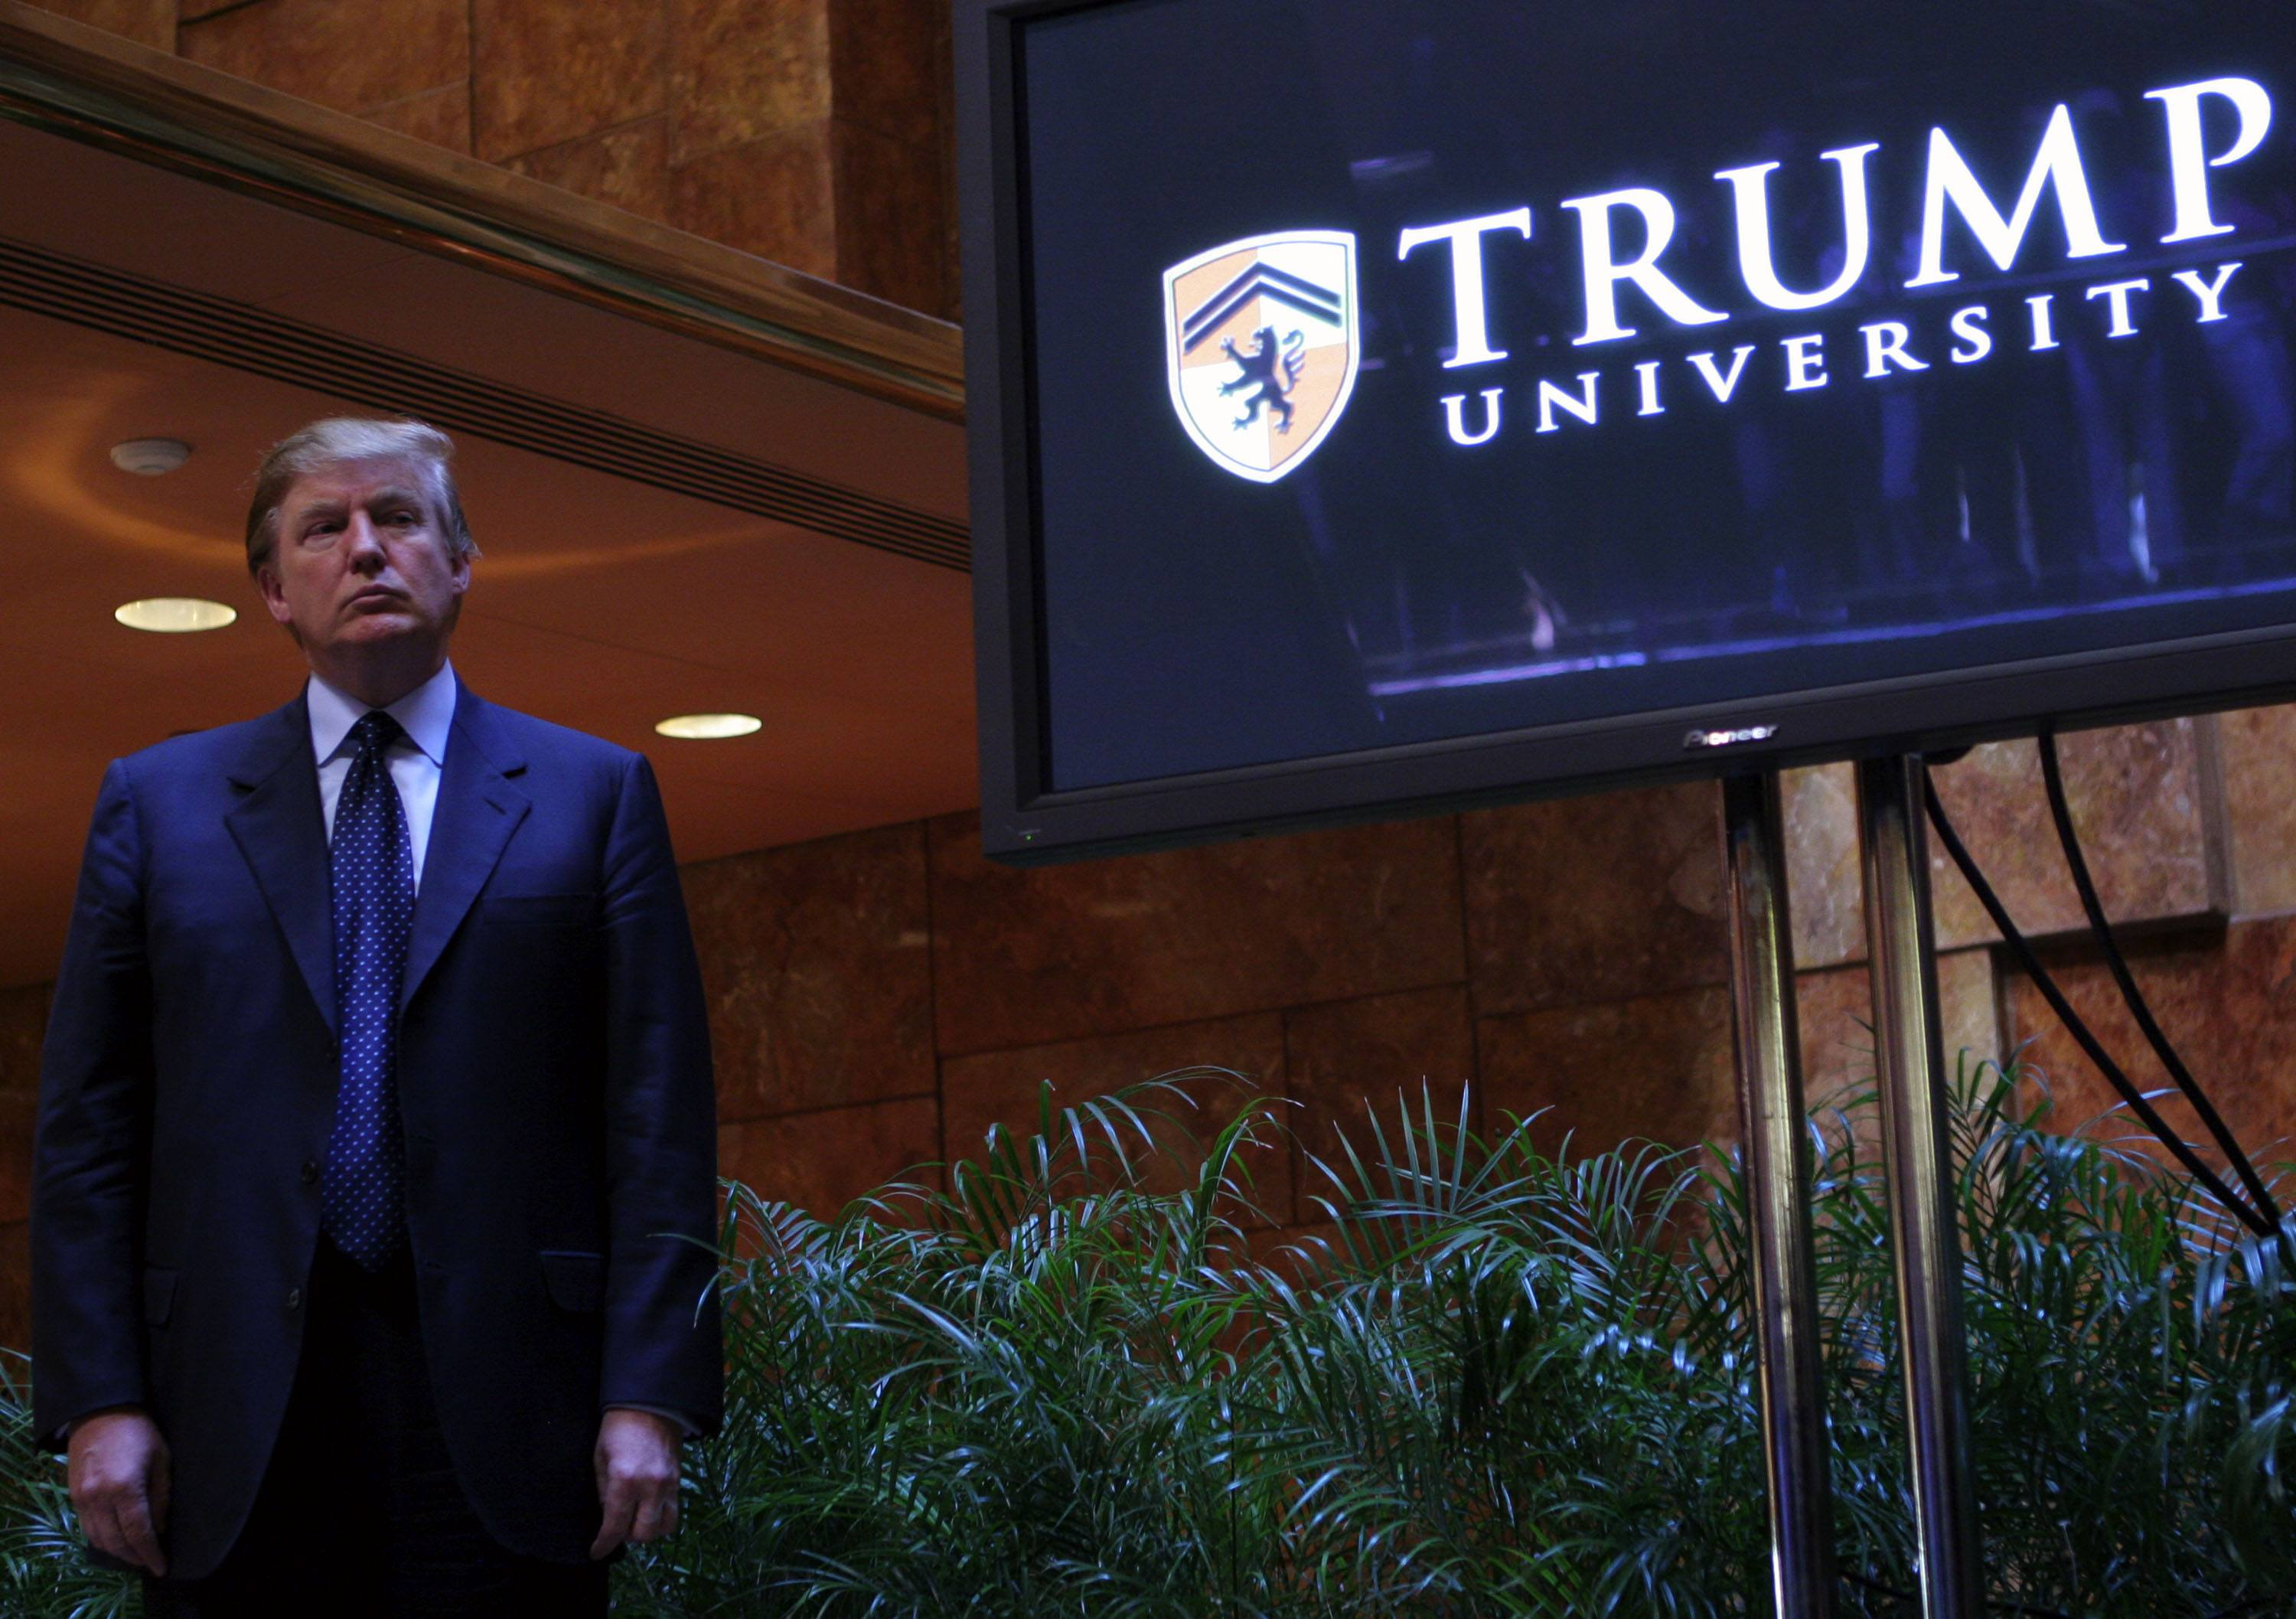 Donald Trump holds a media conference announcing the establishment of Trump University in 2005